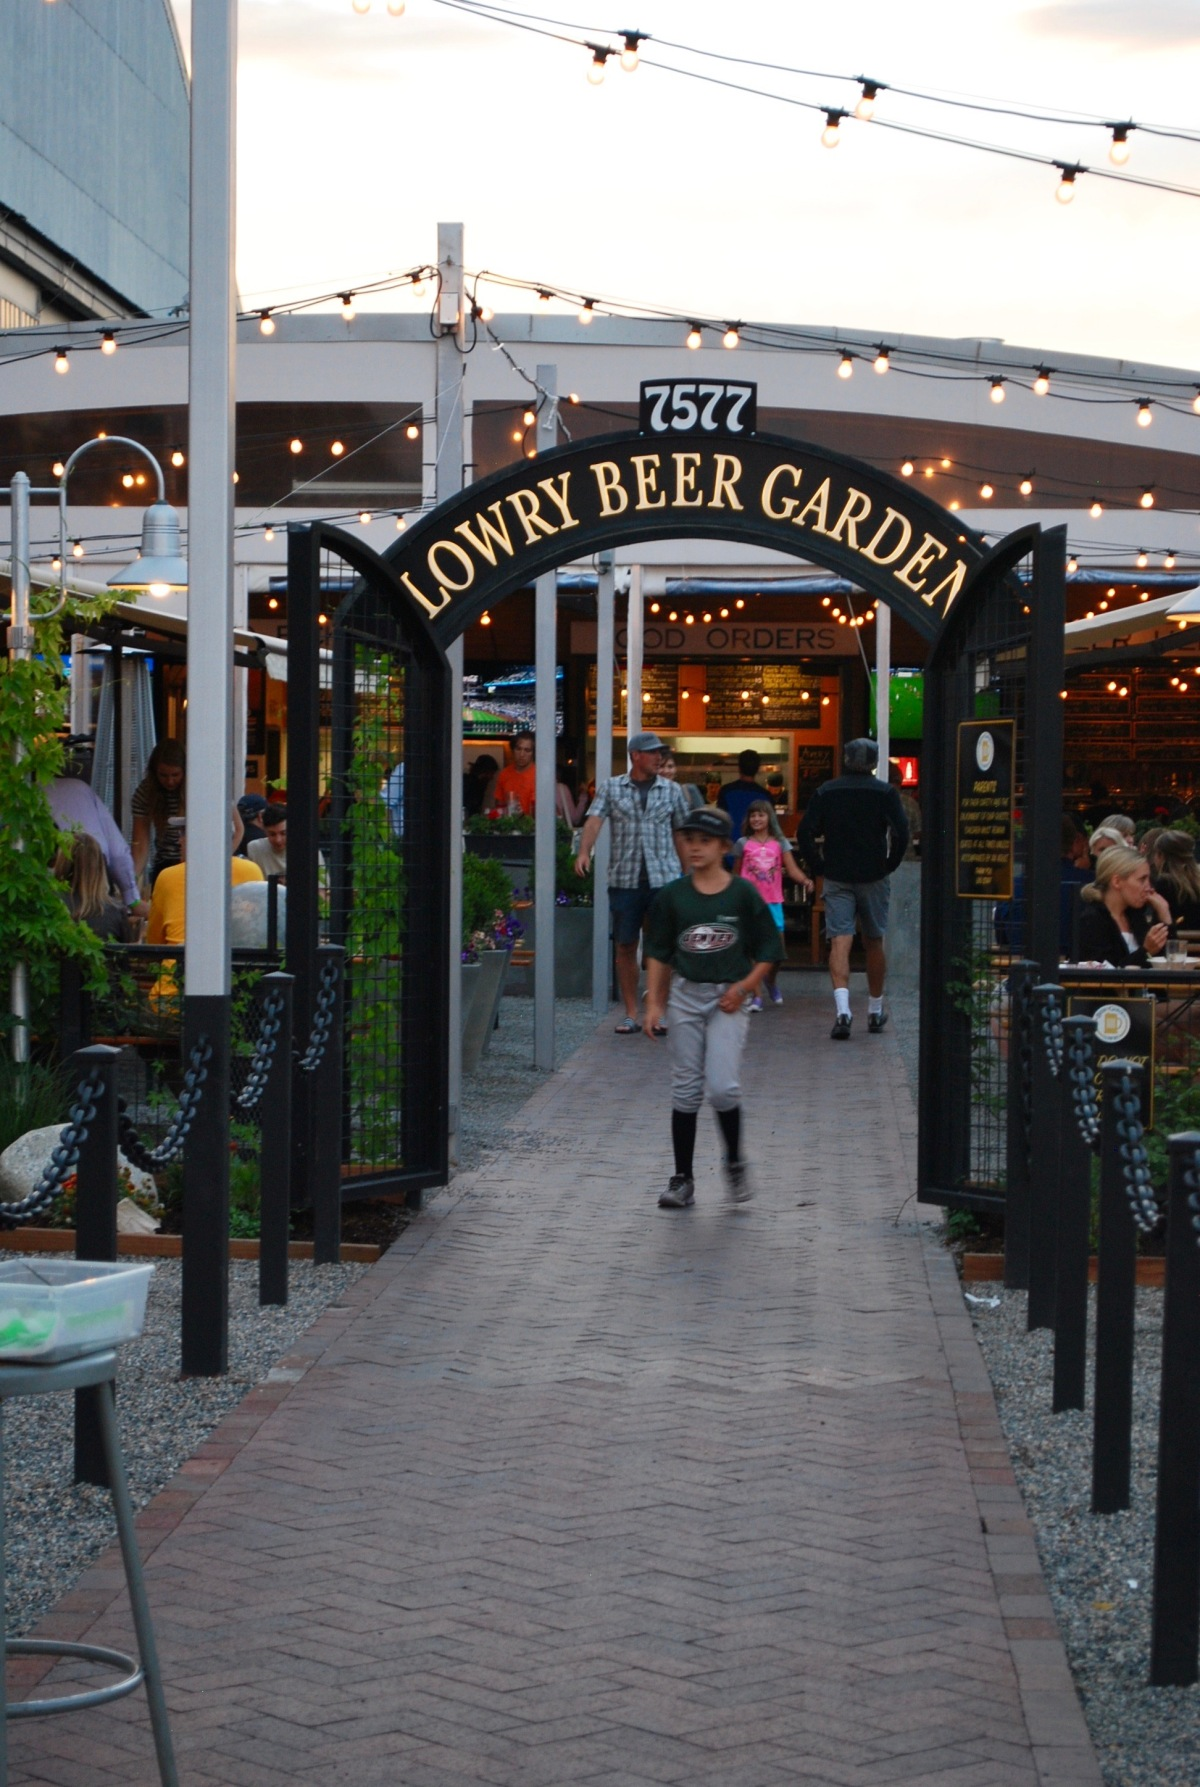 Bars in Lowry Colorado Lowry Beer Garden